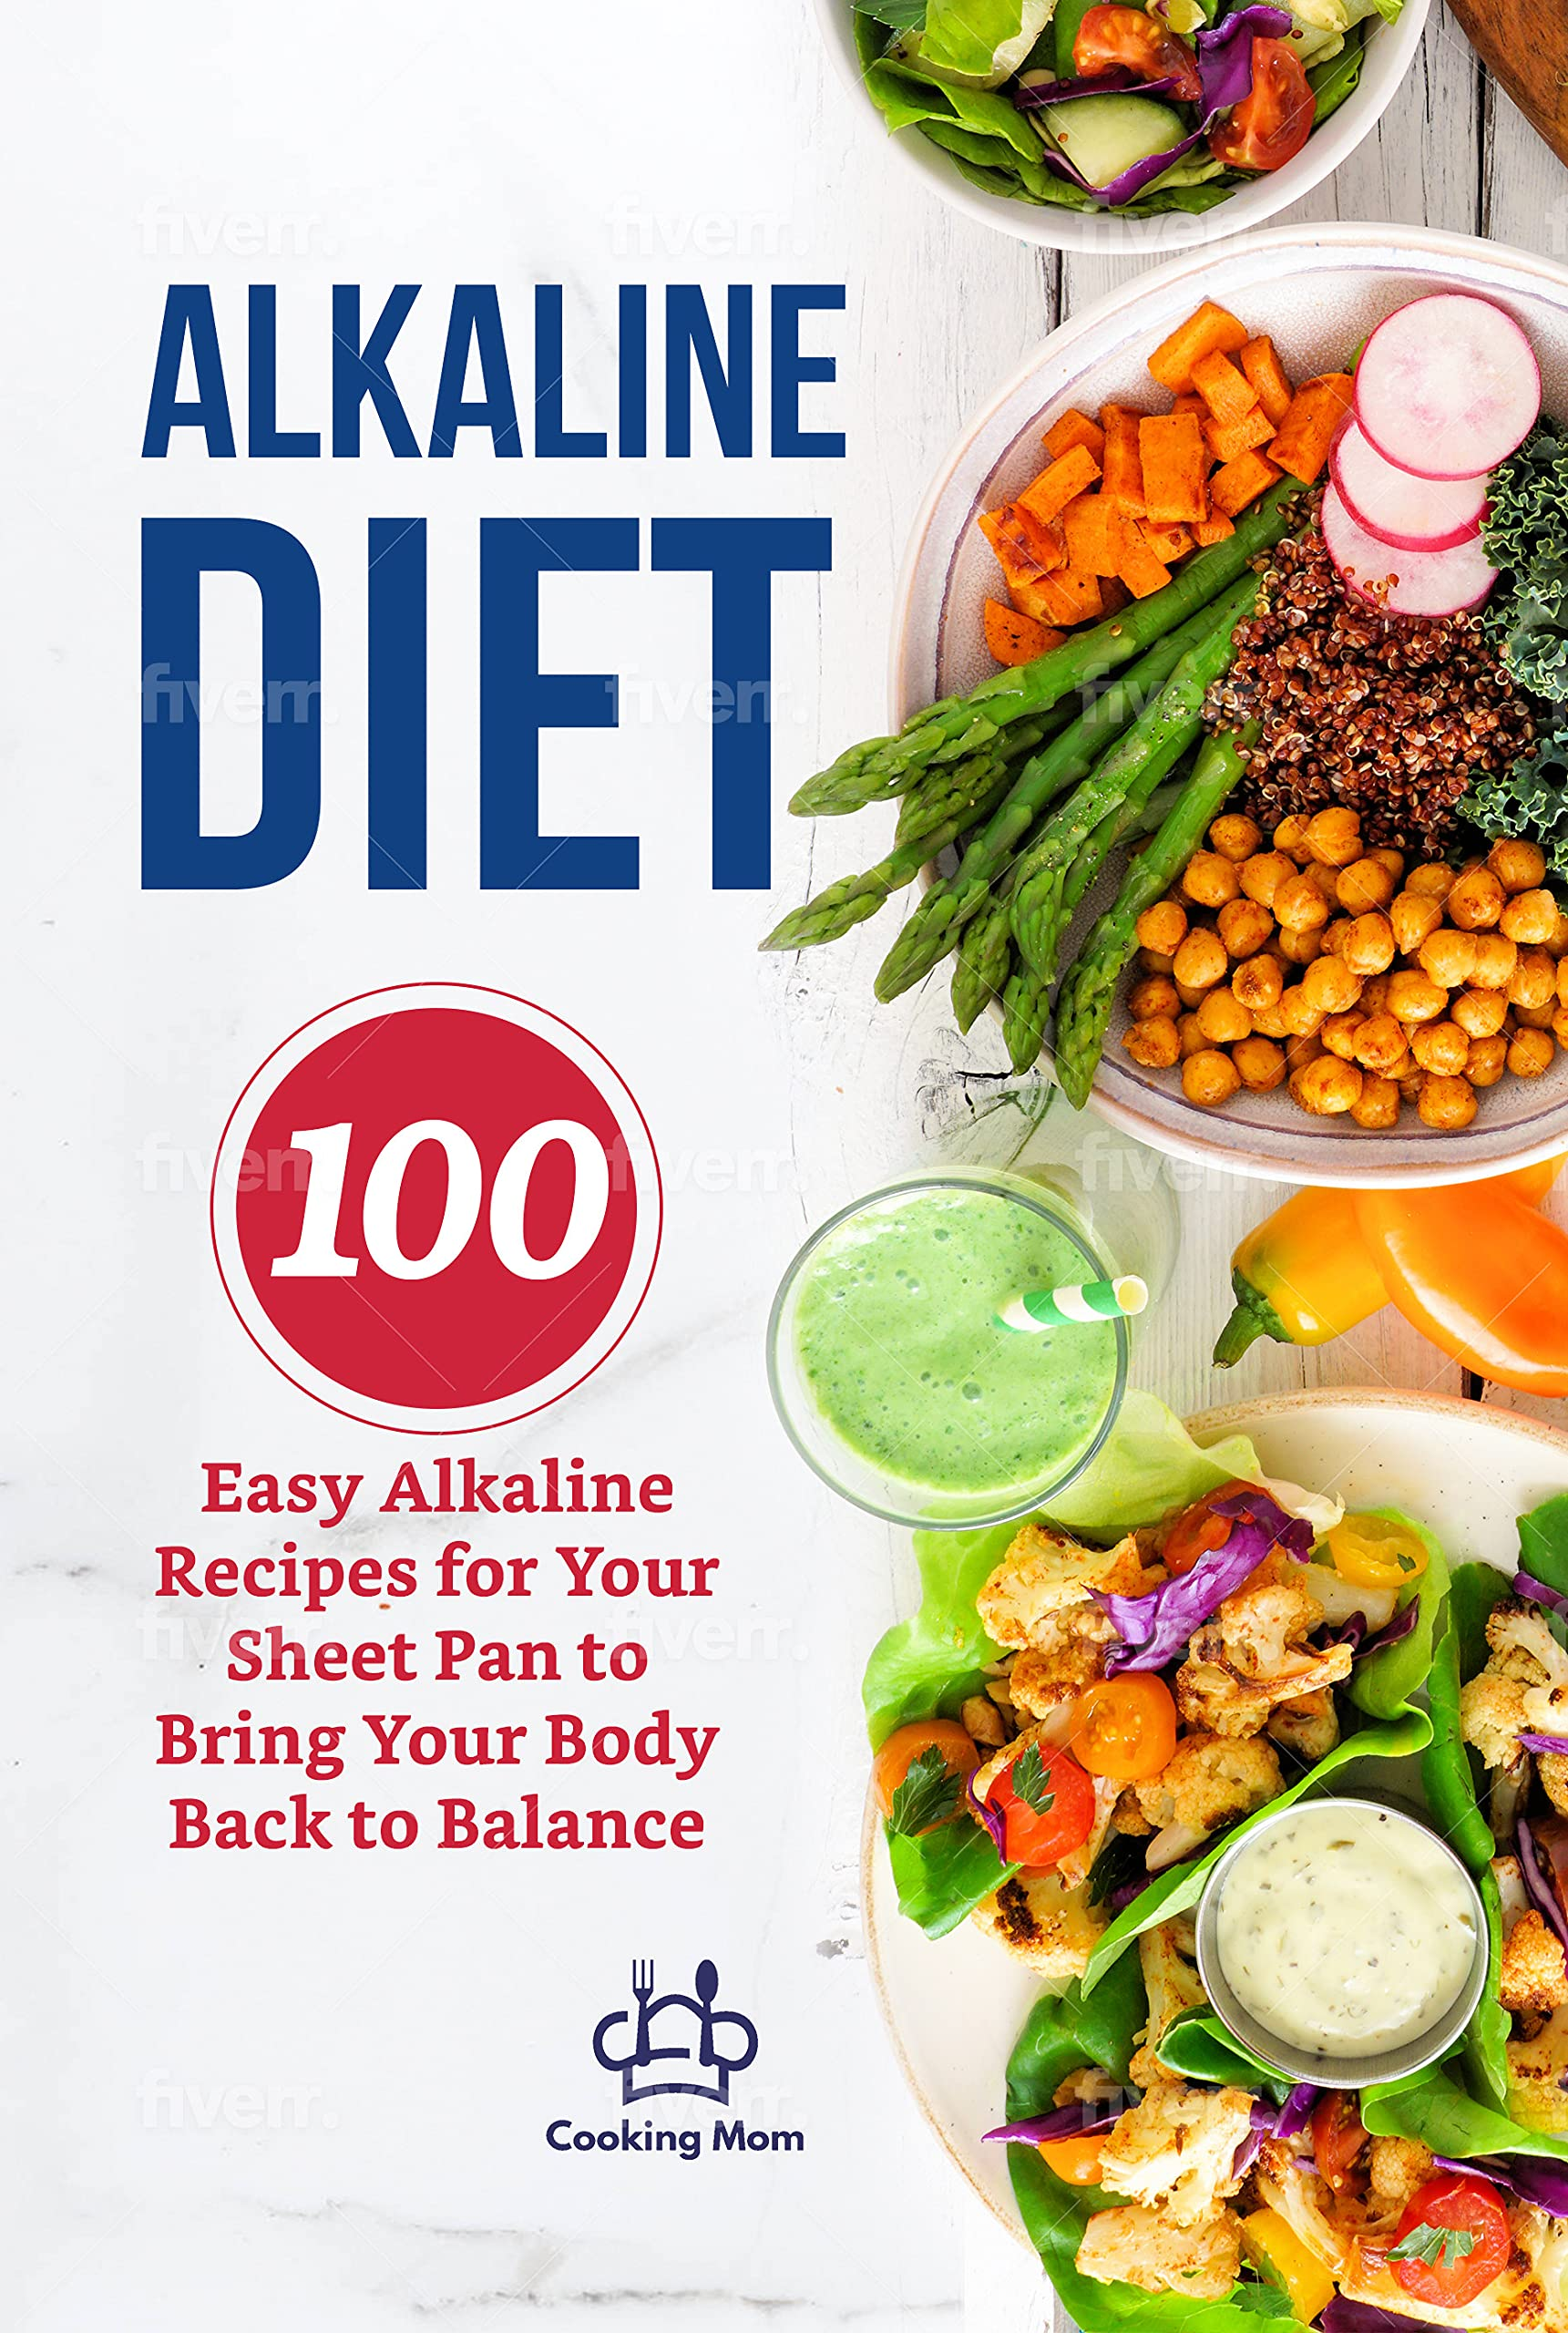 Alkaline Diet Cookbook: 100 Easy Alkaline Recipes for Your Sheet Pan to Bring Your Body Back to Balance